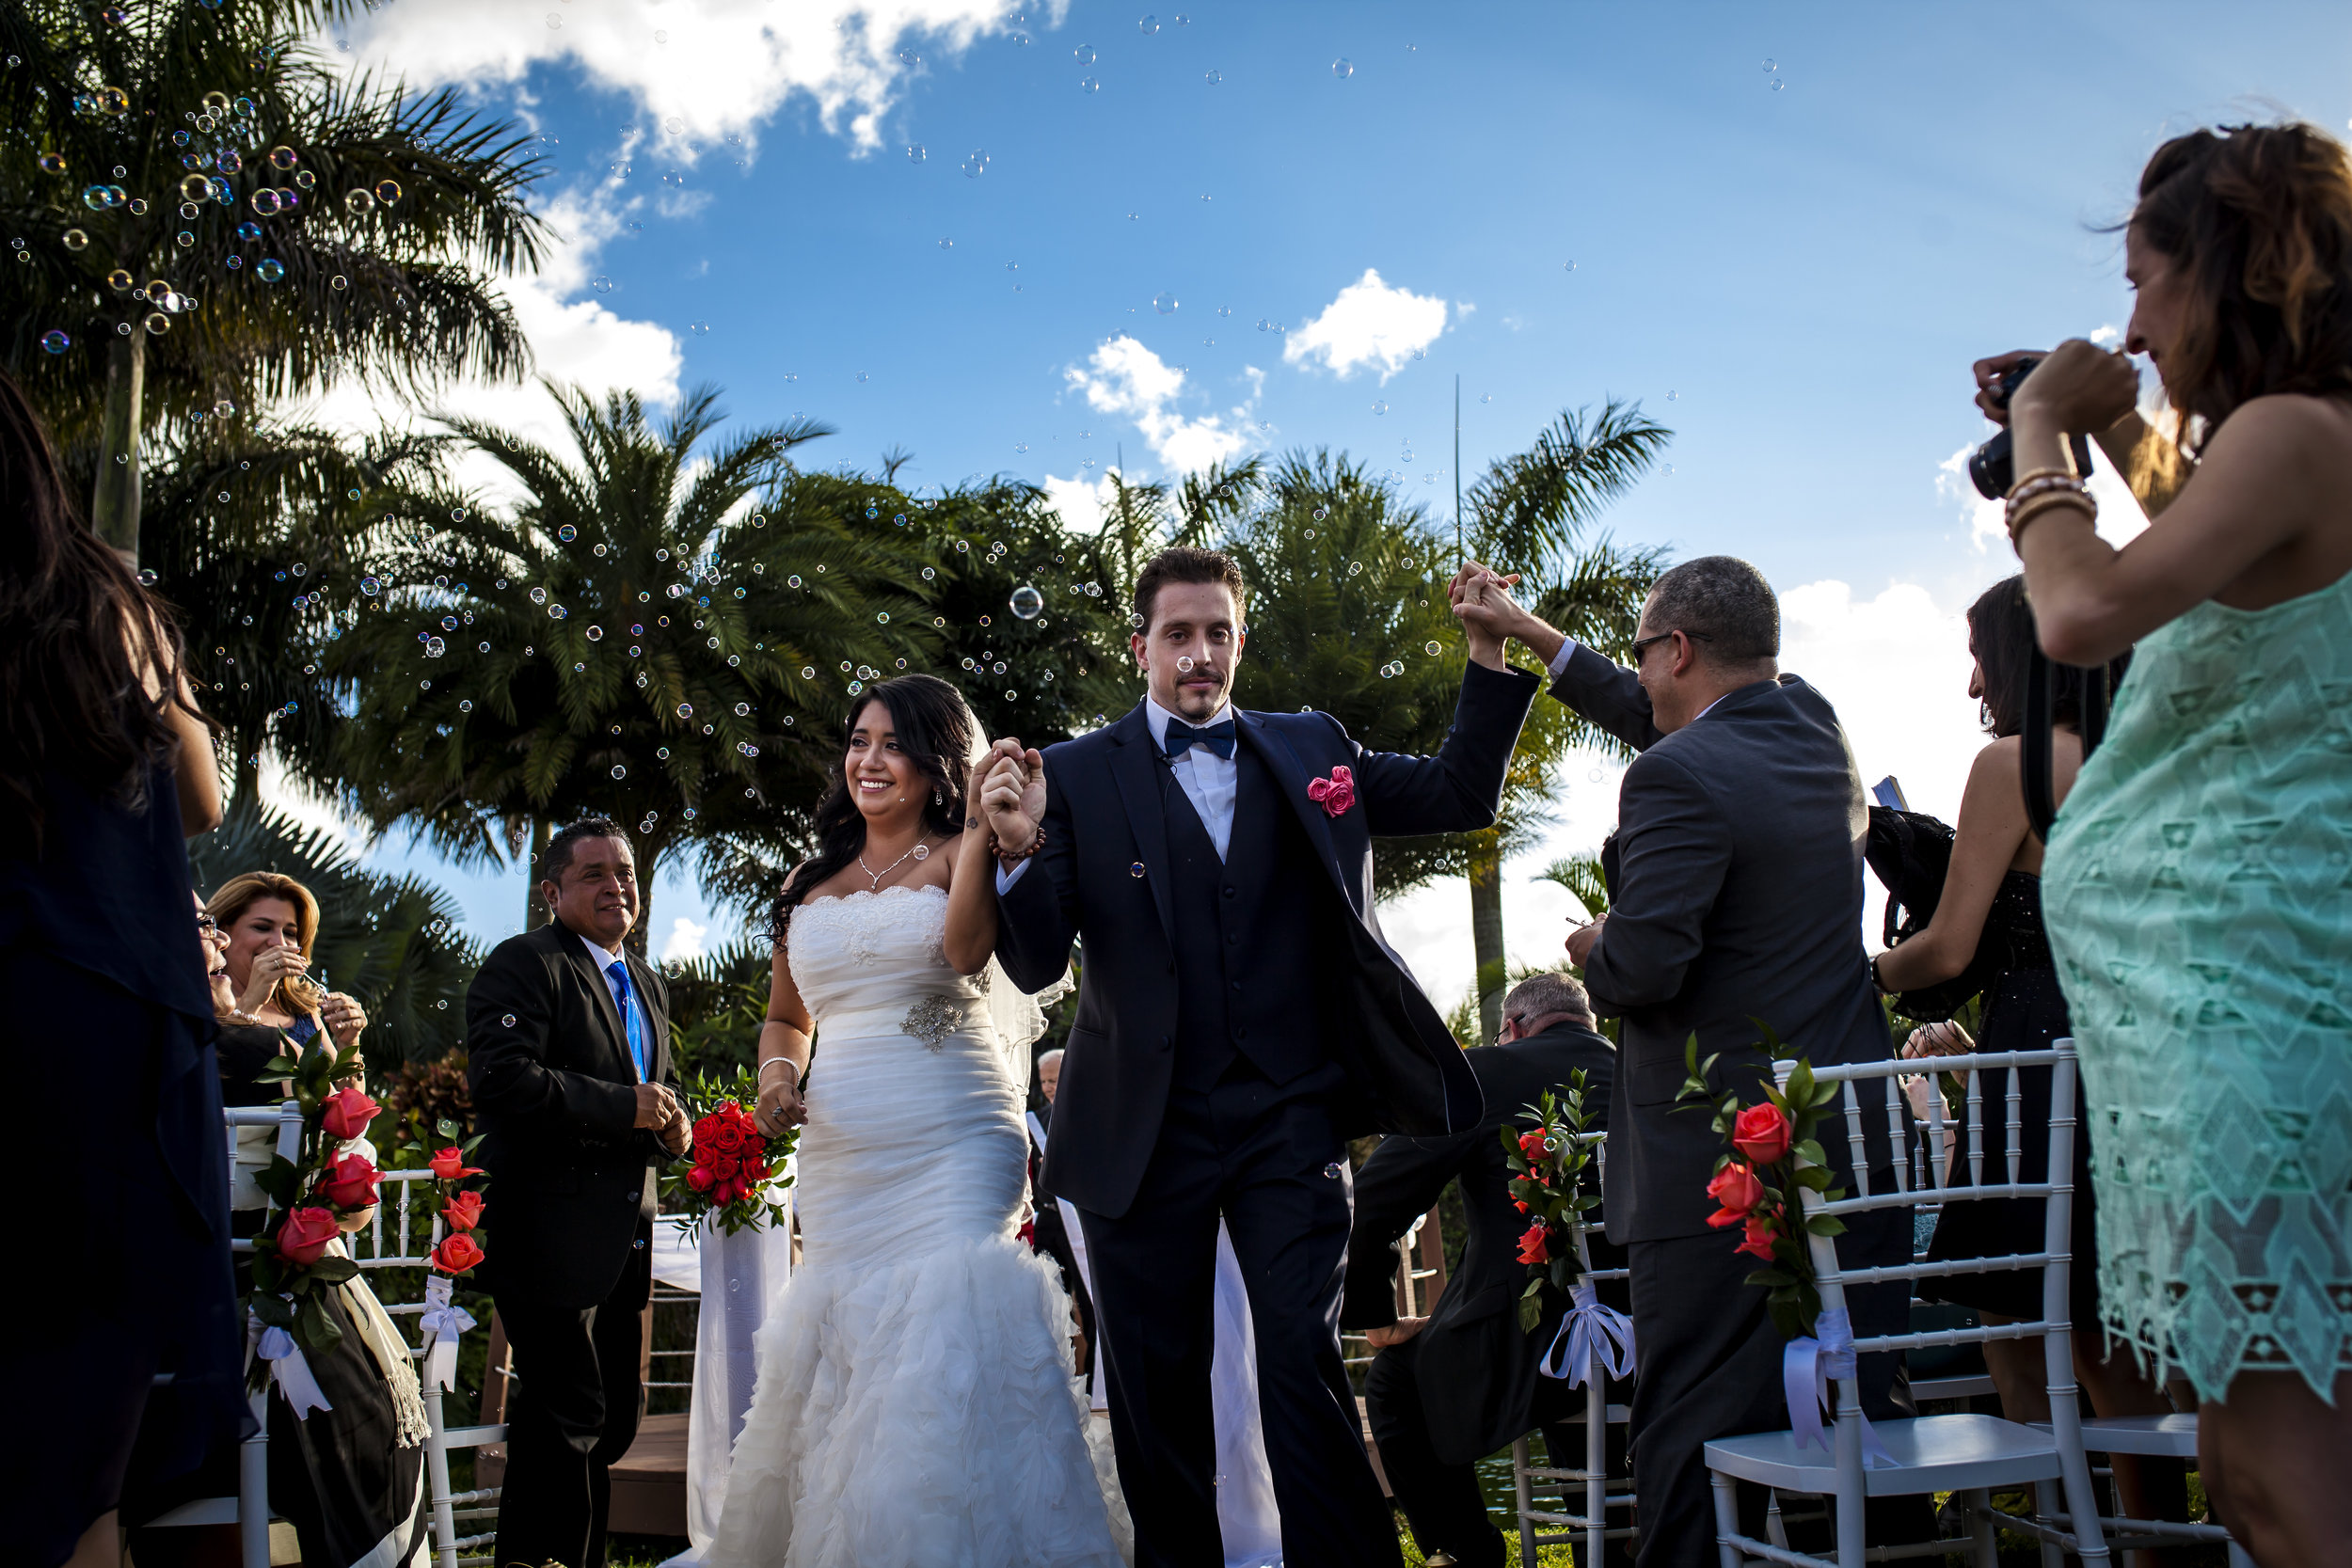 Longans-Place-Miami-Wedding-2190.jpg